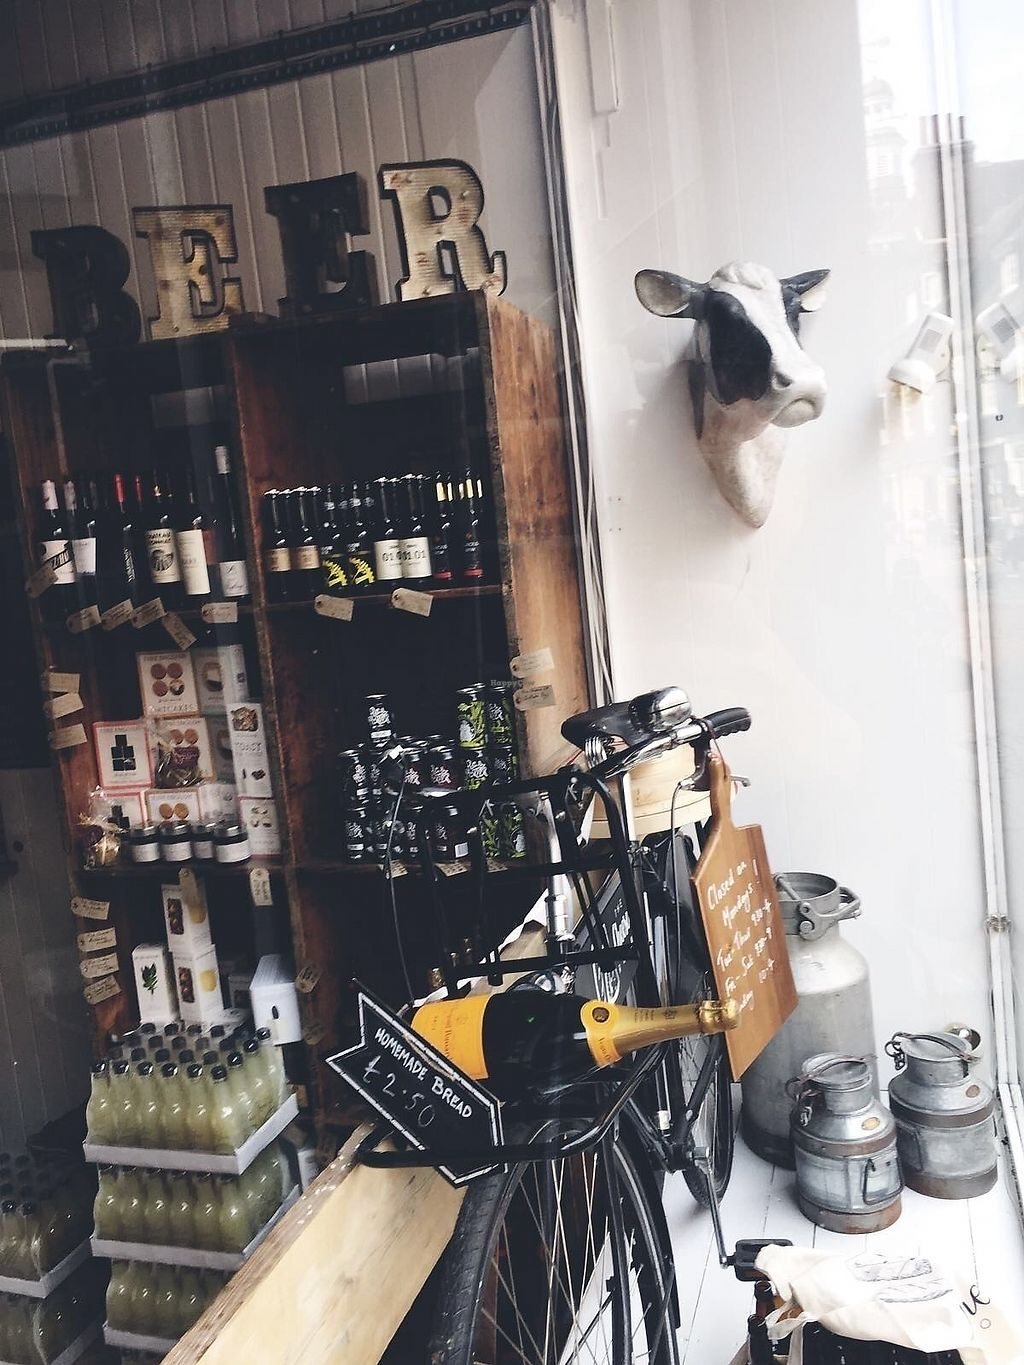 """Photo of The Cheese Room   by <a href=""""/members/profile/TARAMCDONALD"""">TARAMCDONALD</a> <br/>The Cheese Room, Rochester <br/> August 24, 2017  - <a href='/contact/abuse/image/97648/296753'>Report</a>"""